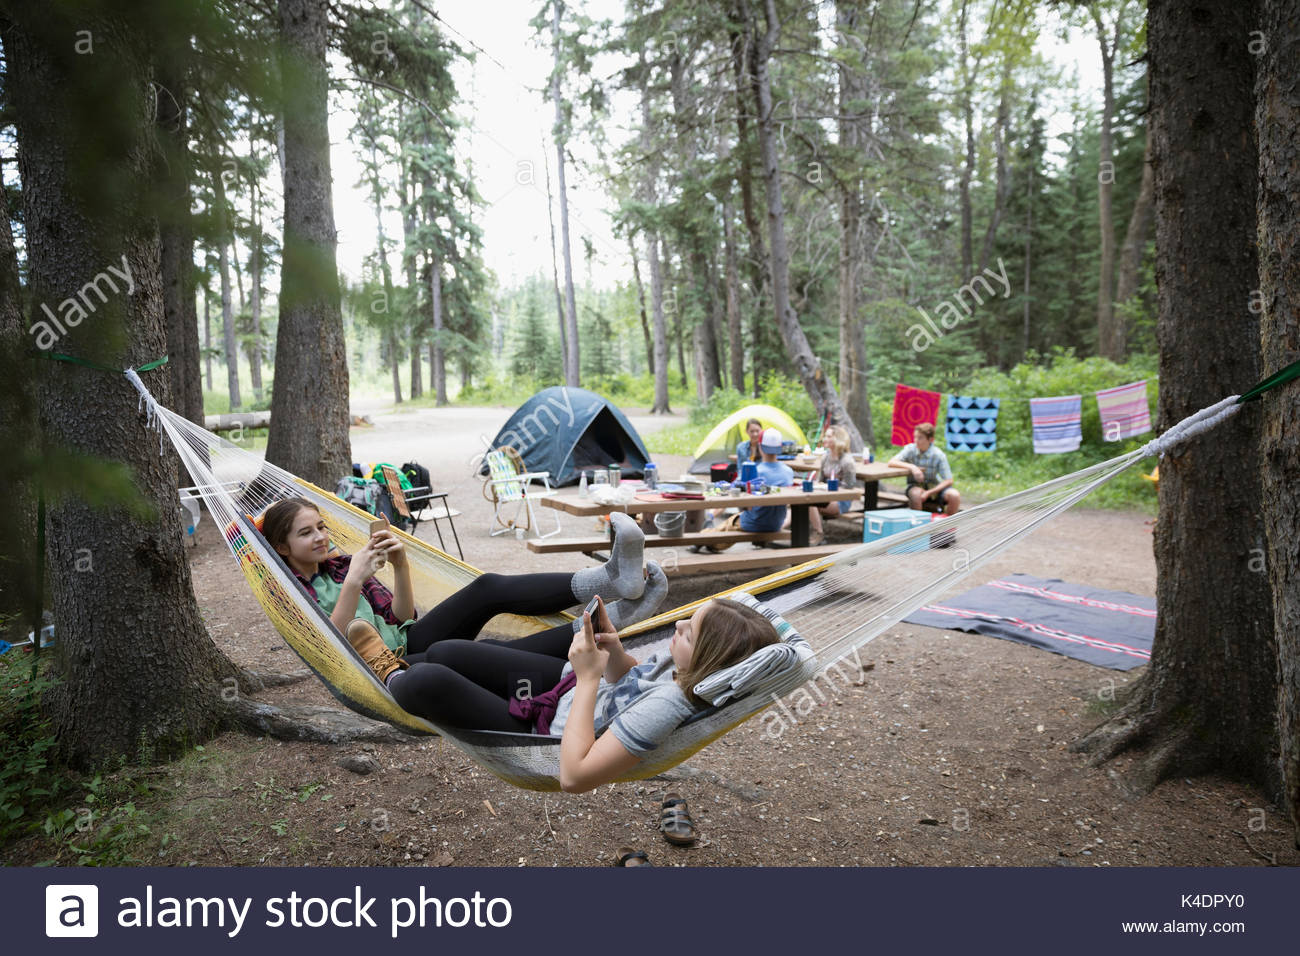 Teenage girl friends relaxing, texting with cell phones in hammocks at outdoor school campsite - Stock Image